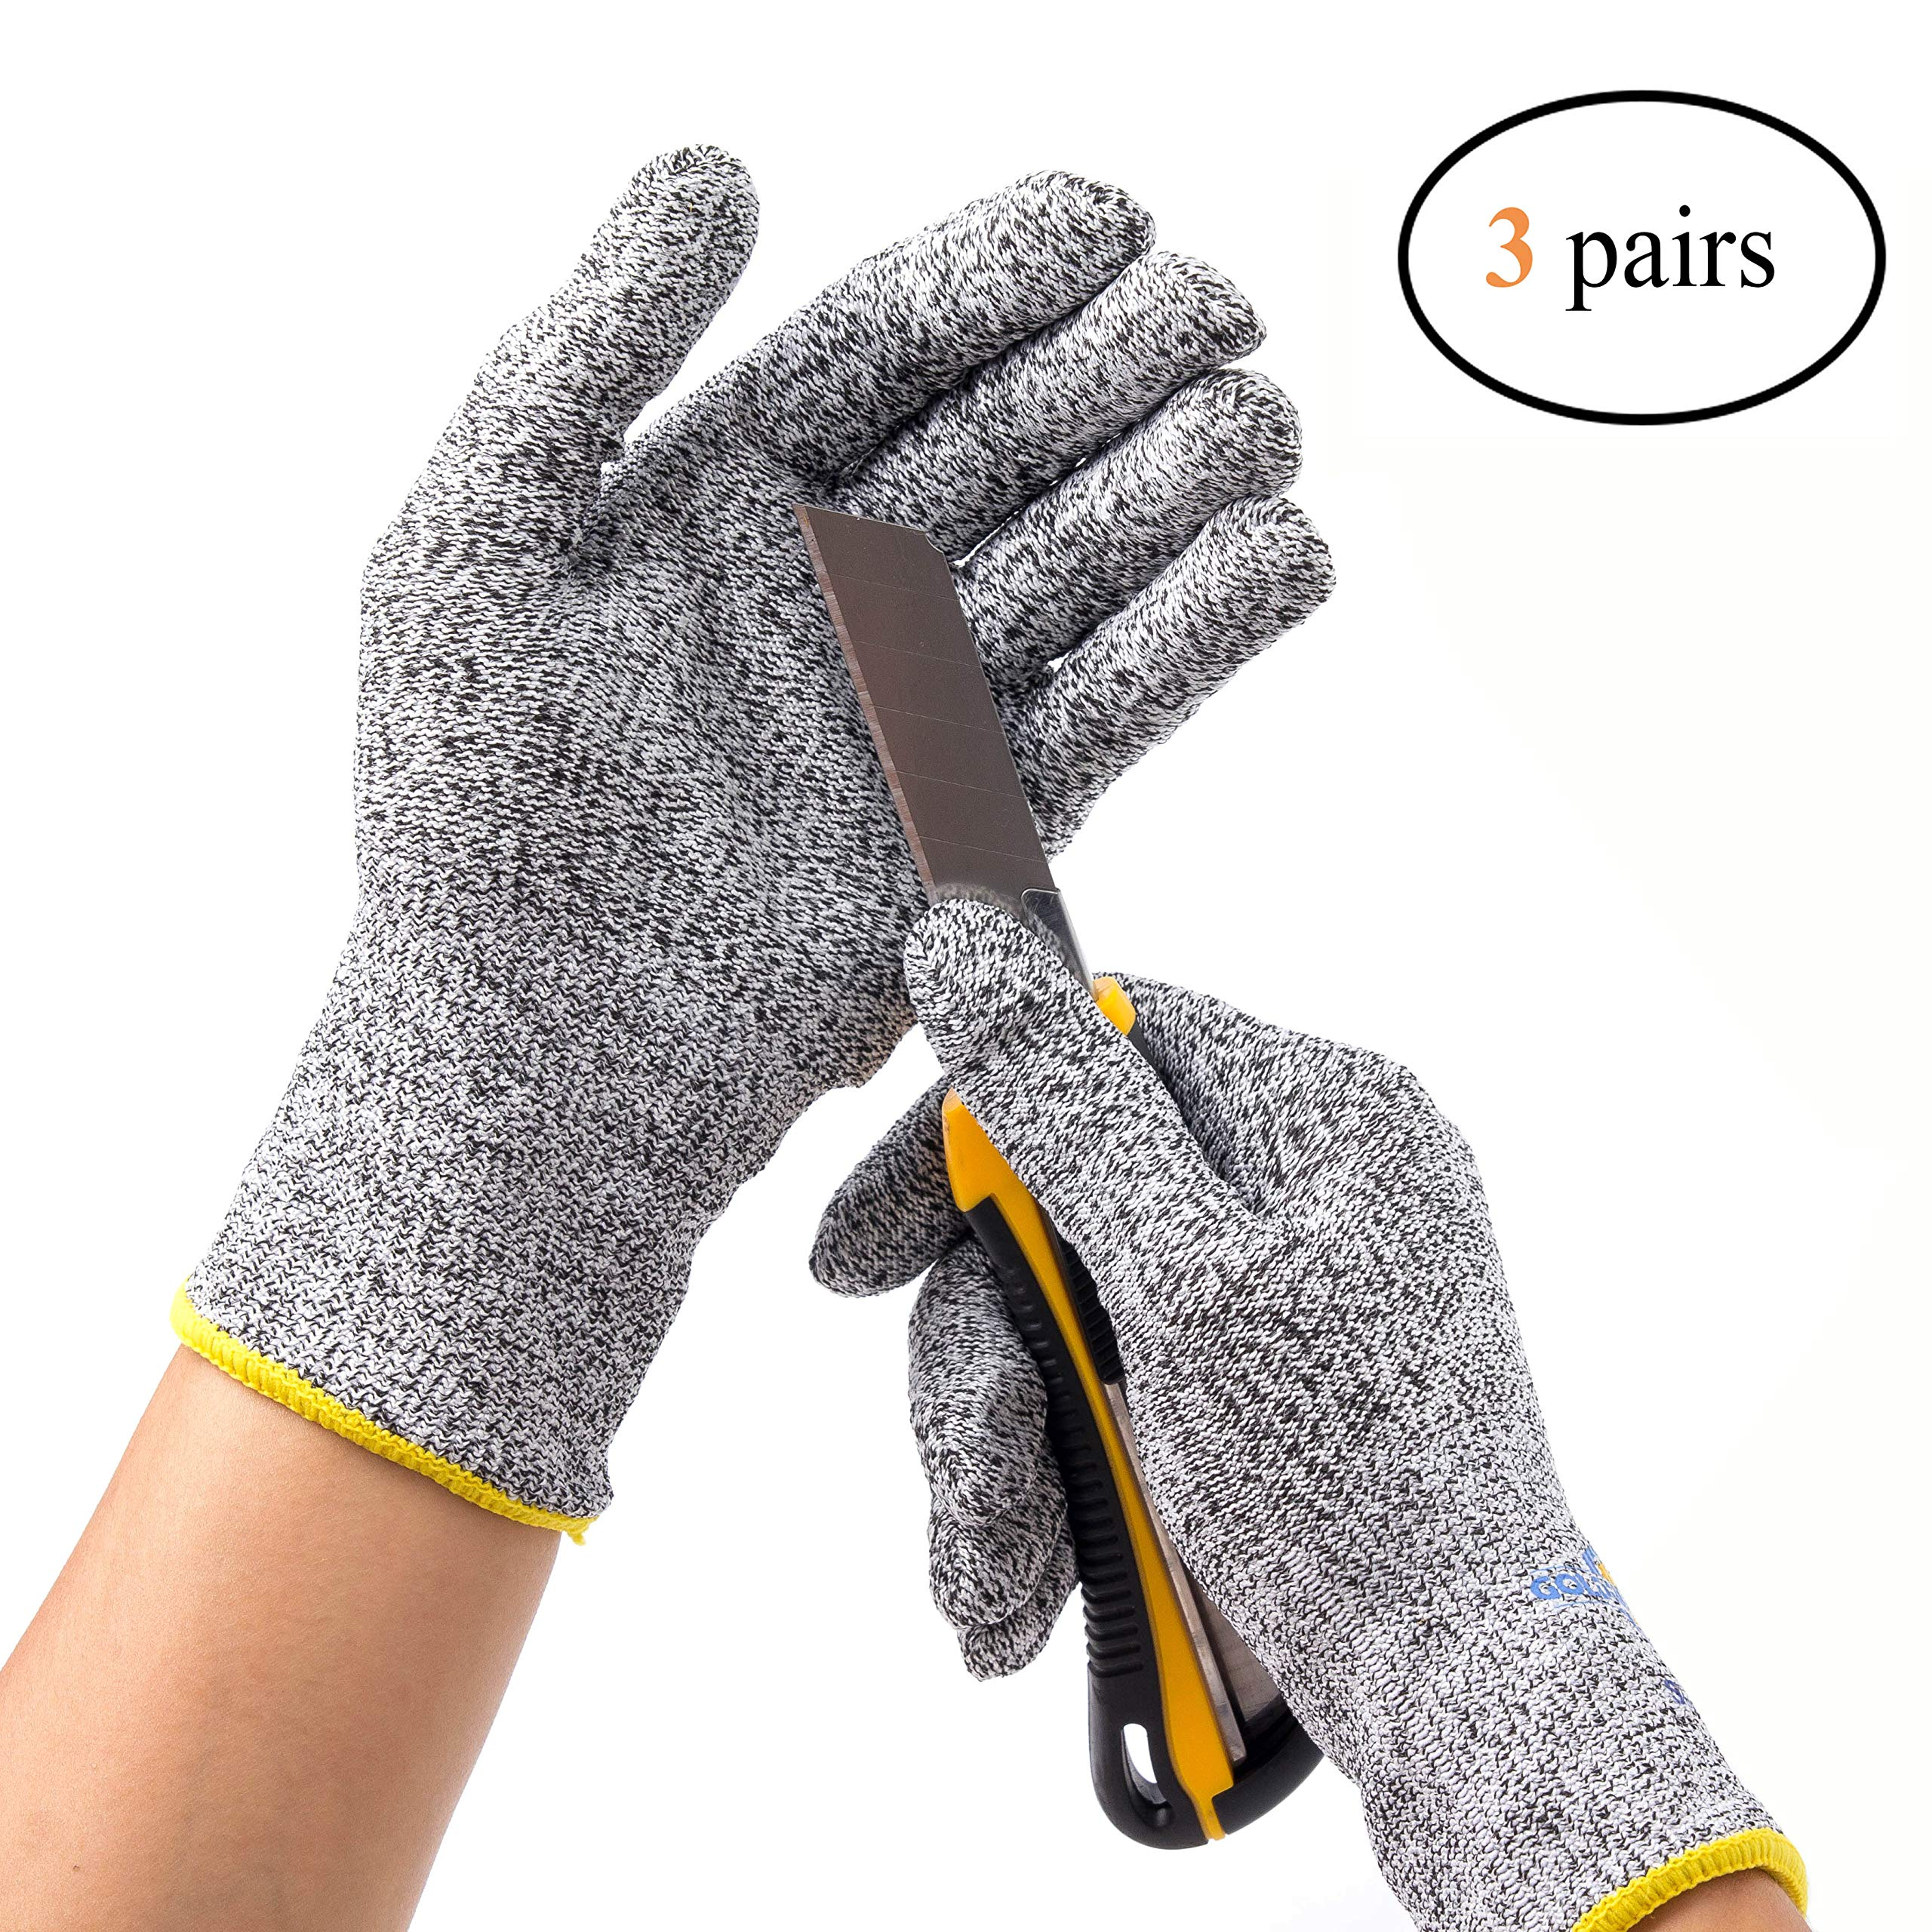 Golden Scute Level 5 Protection Cut Resistant Safety Work Gloves, Food Grade, 3 Pairs (Large/Size 9)